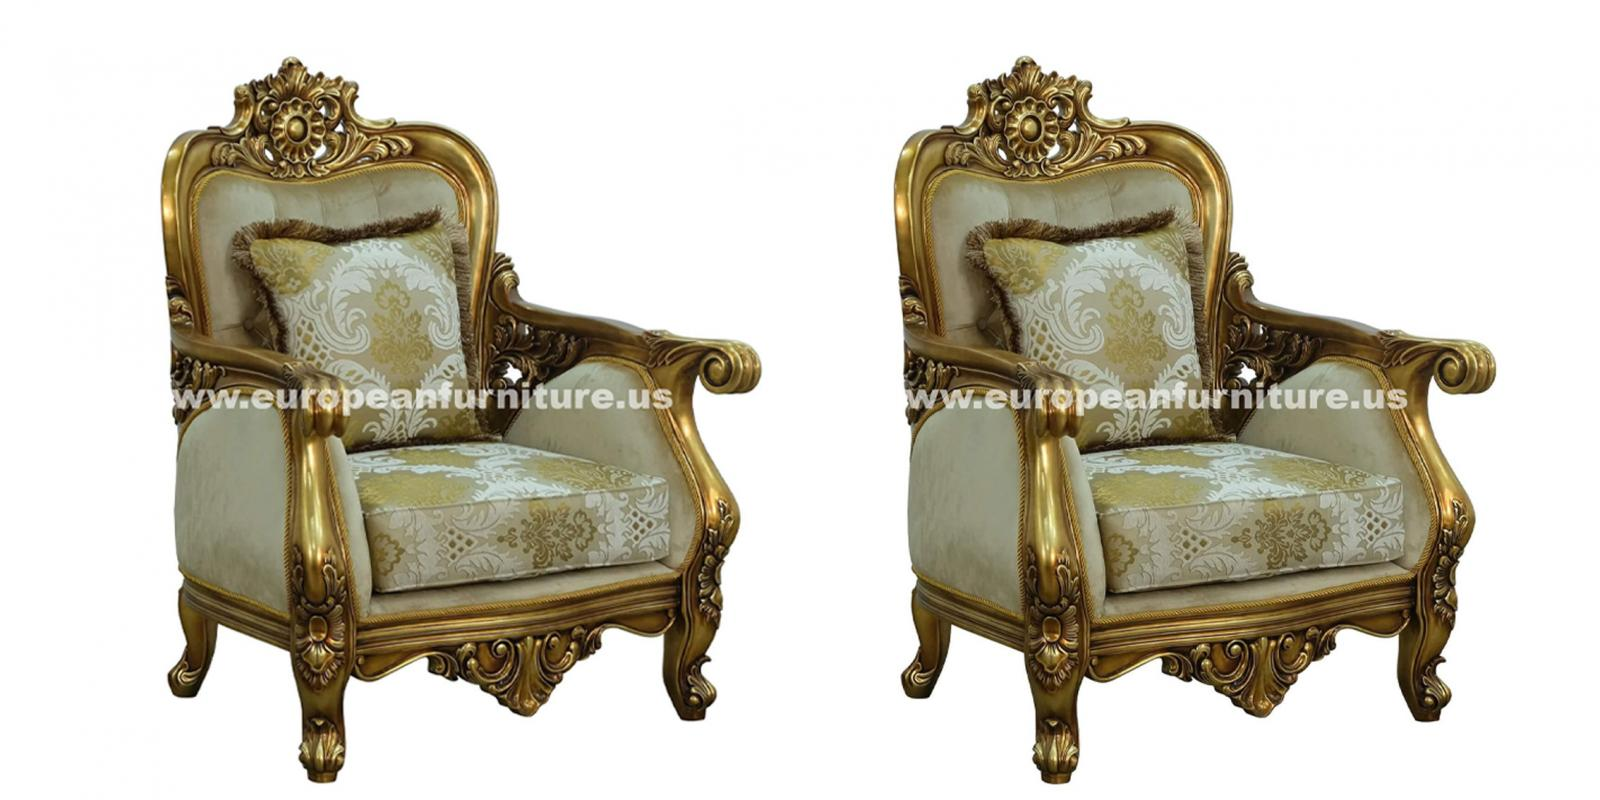 Classic, Traditional Beige, Bronze, Antique Fabric and Wood, Solid Hardwood Arm Chair Set 2 pcs BELLAGIO 3016 by European Furniture